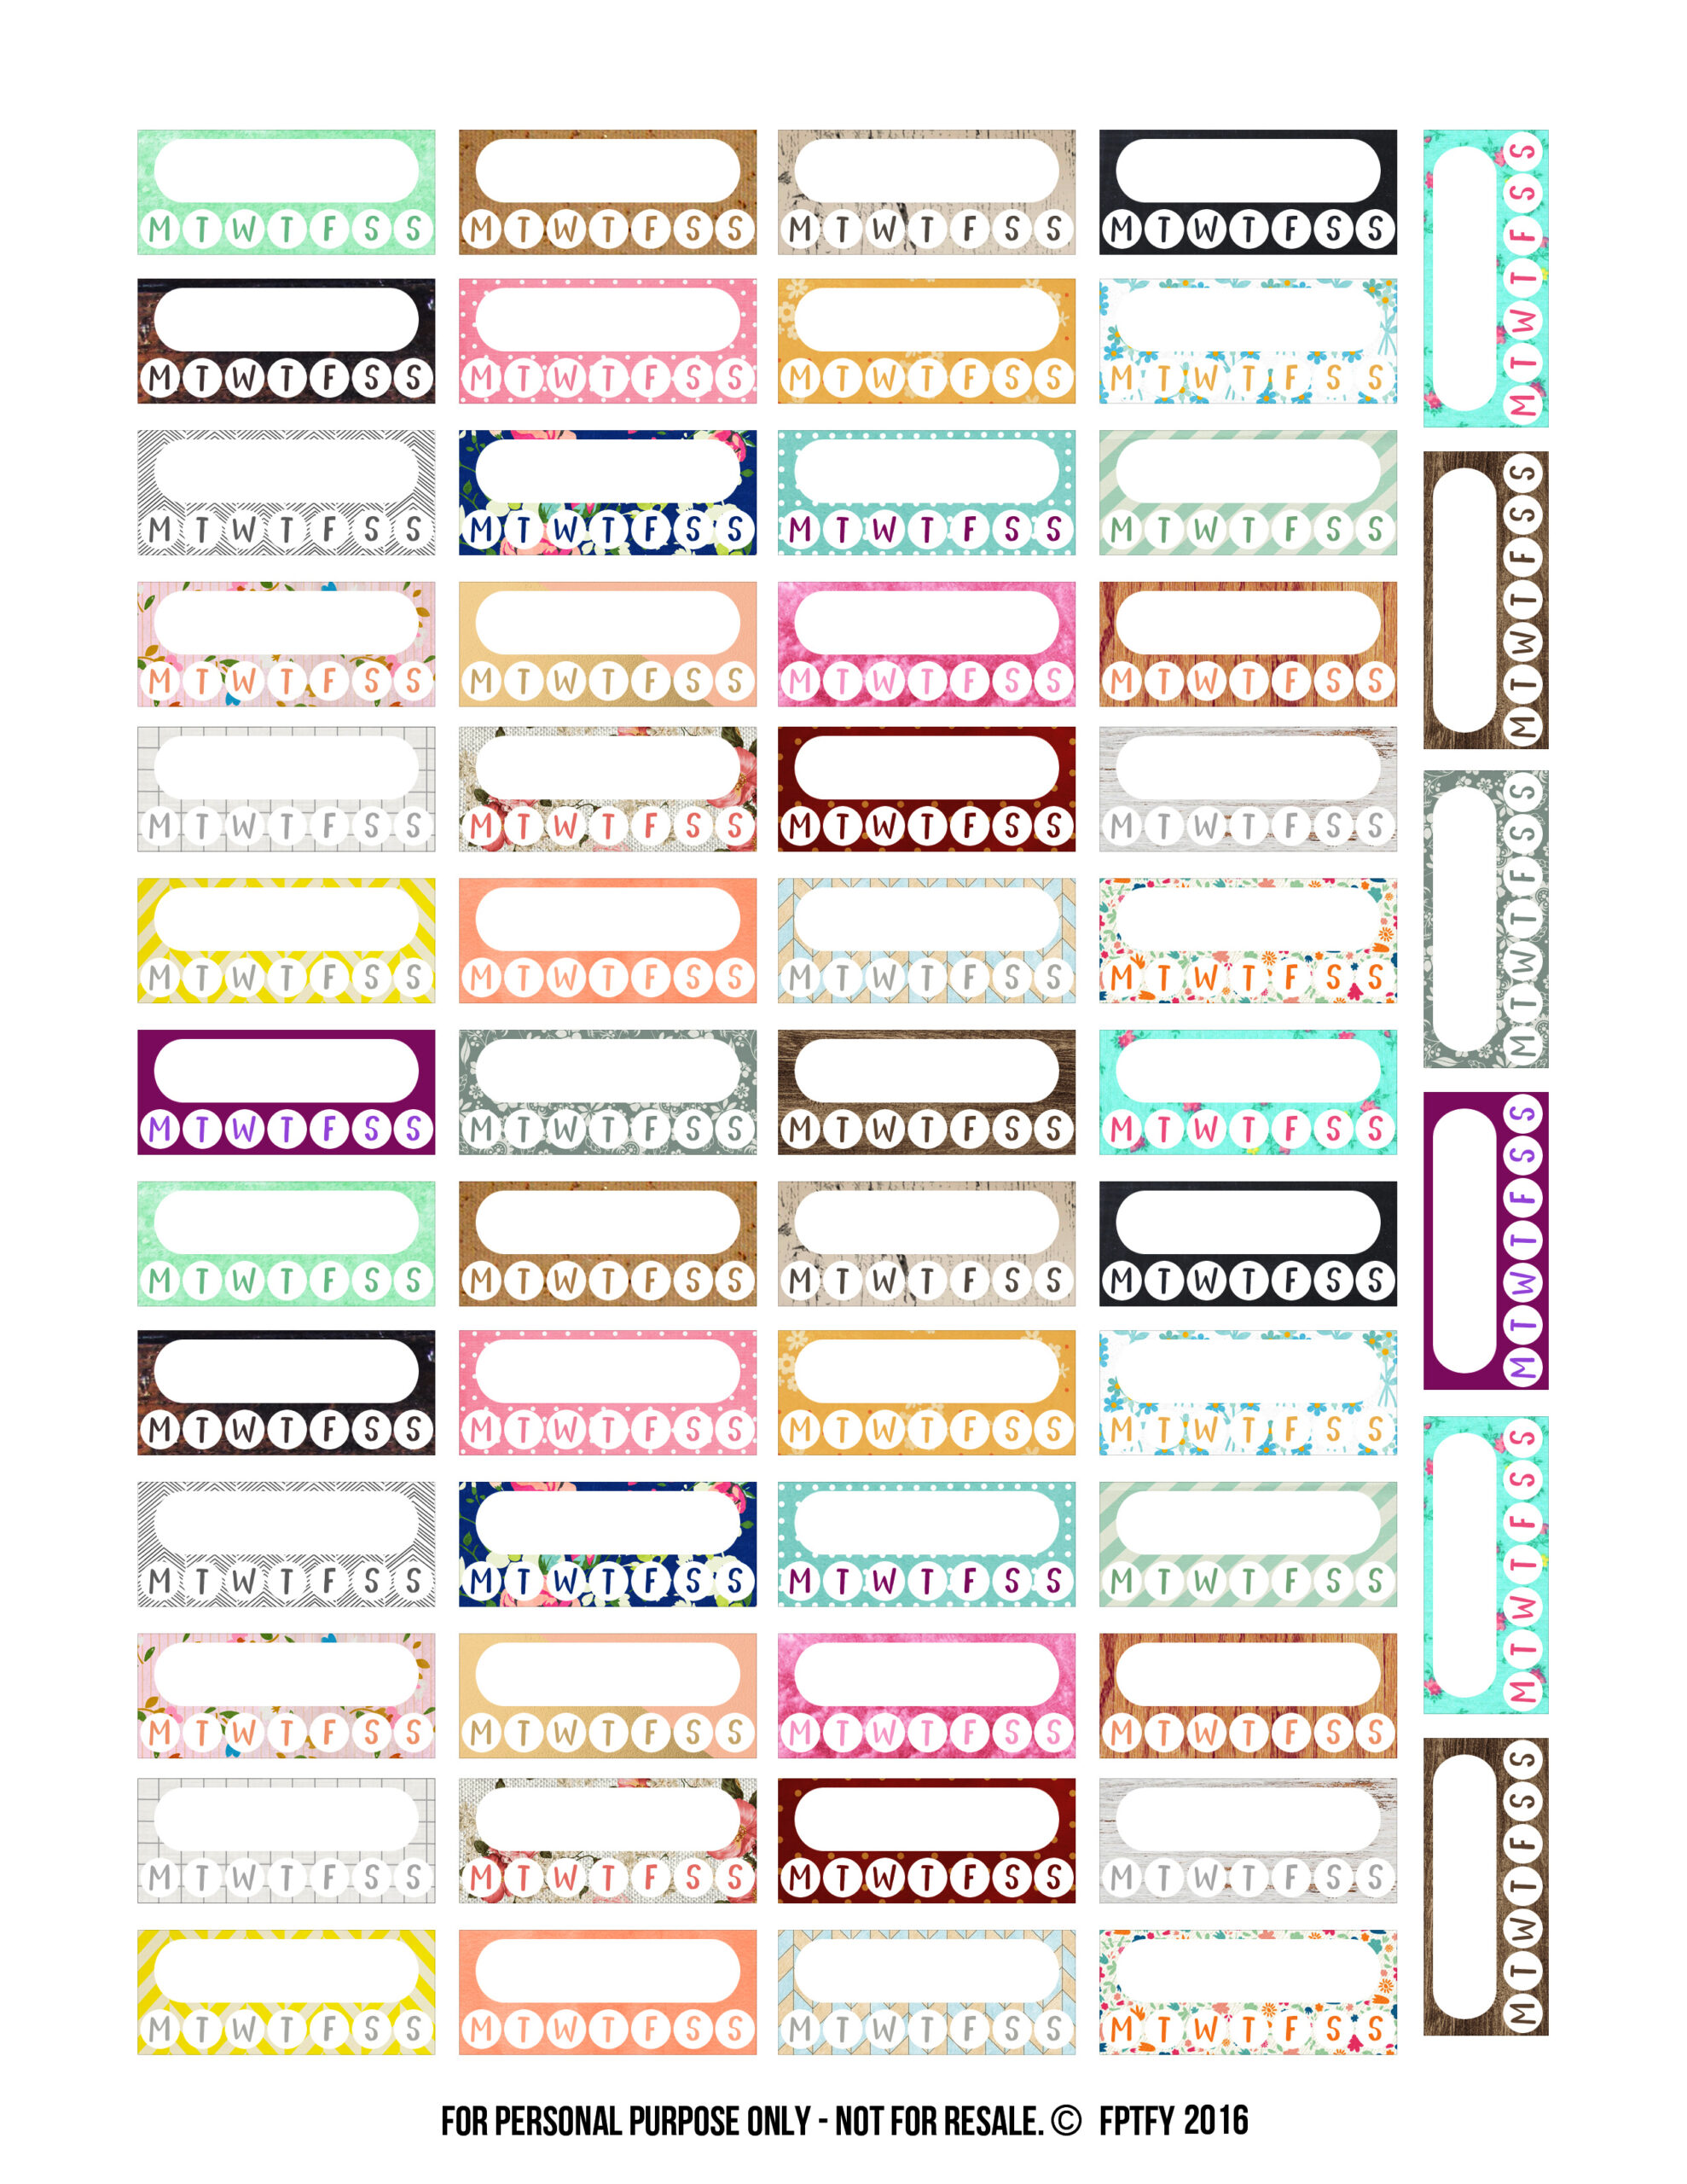 Free Variety Pack Habit Tracker Planner Stickers! - Free Pretty ... for Planner Stickers Template  186ref